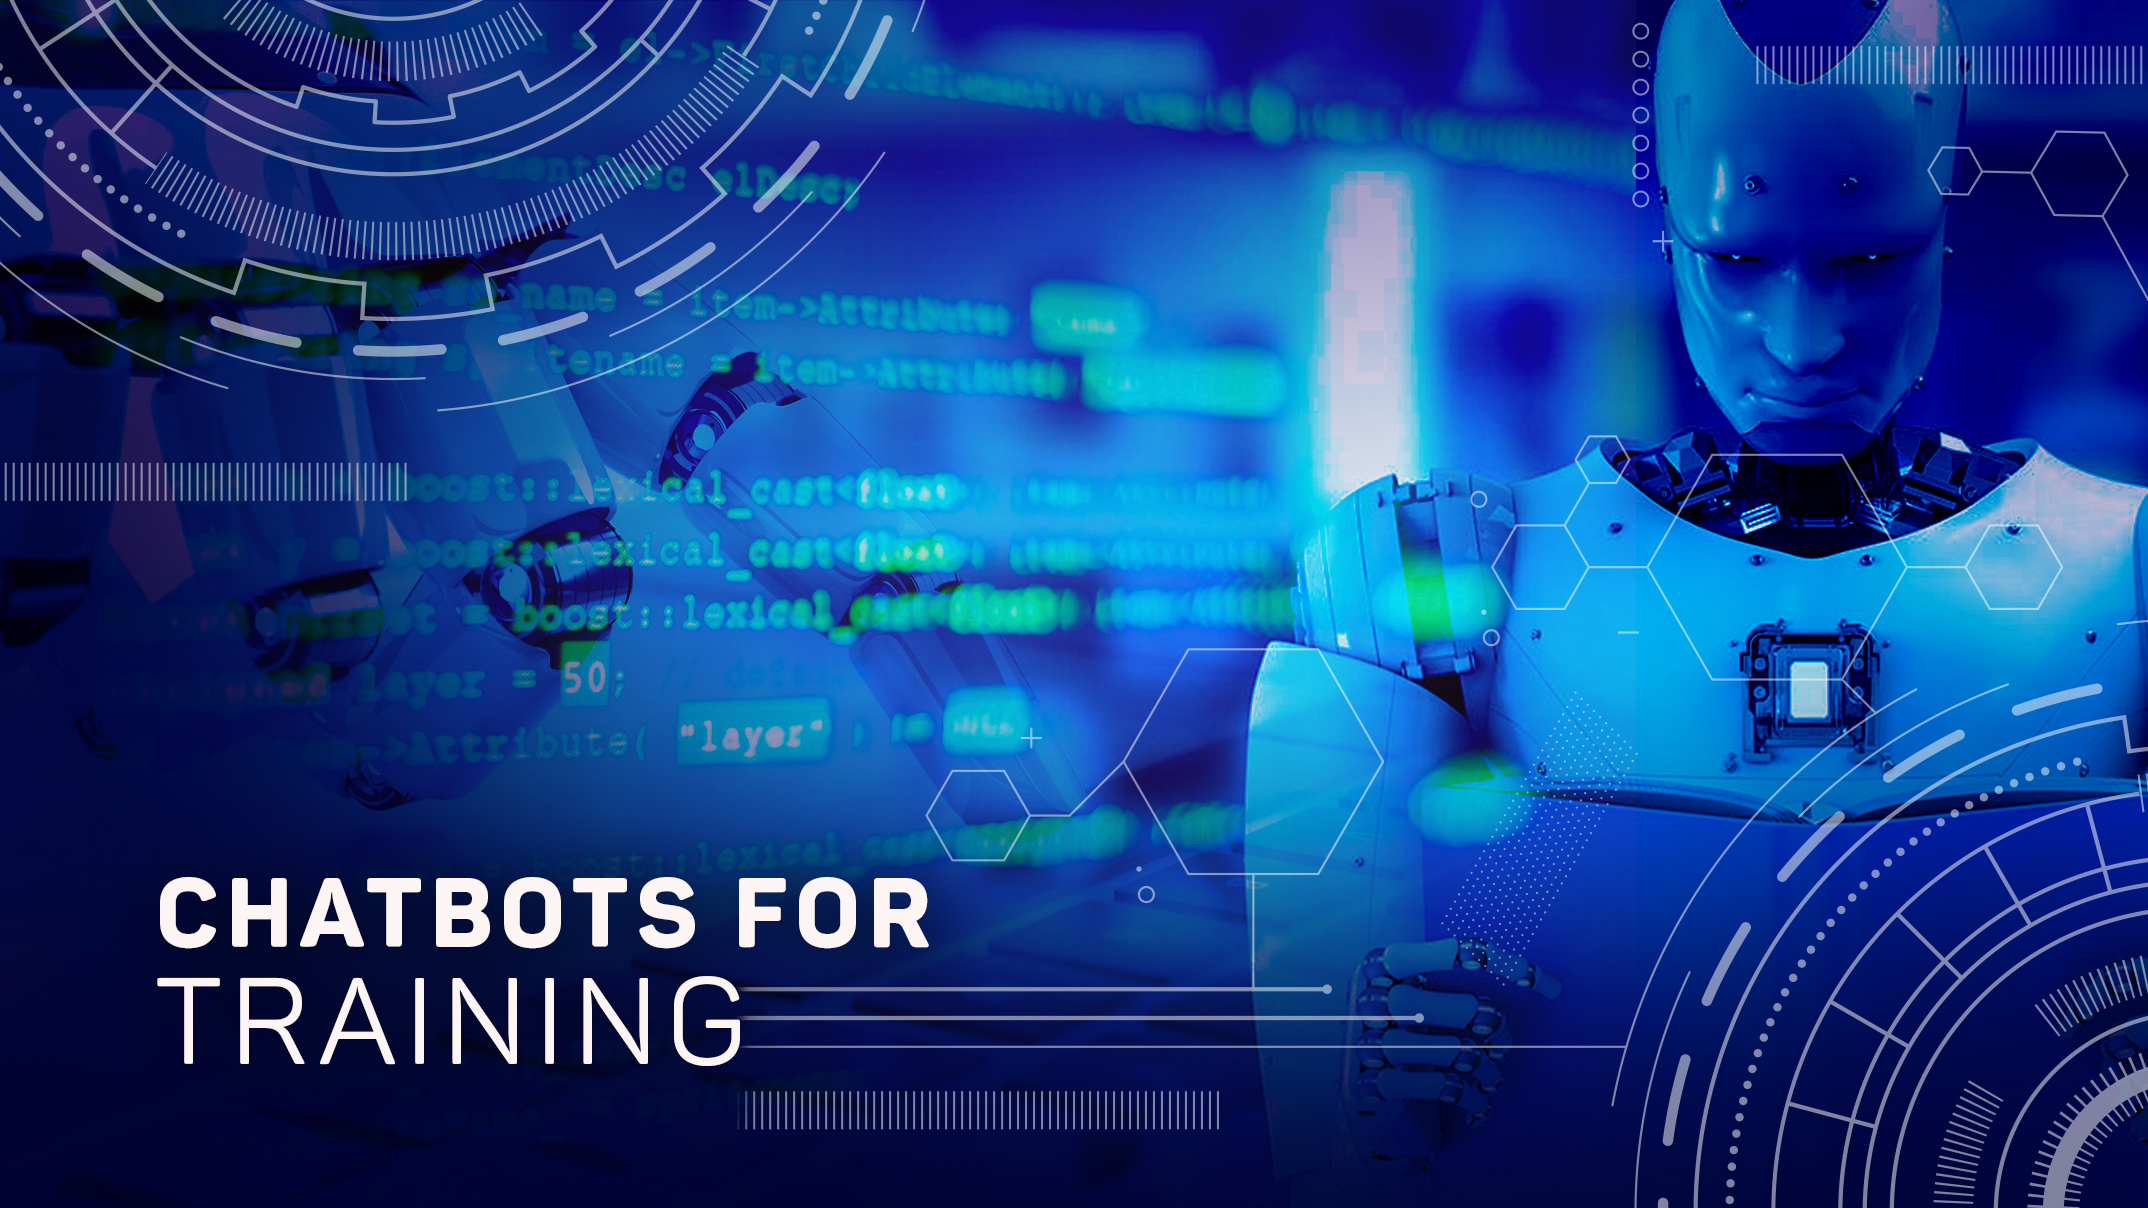 The Bots that train: An AI Use case for Training Heavy Firms